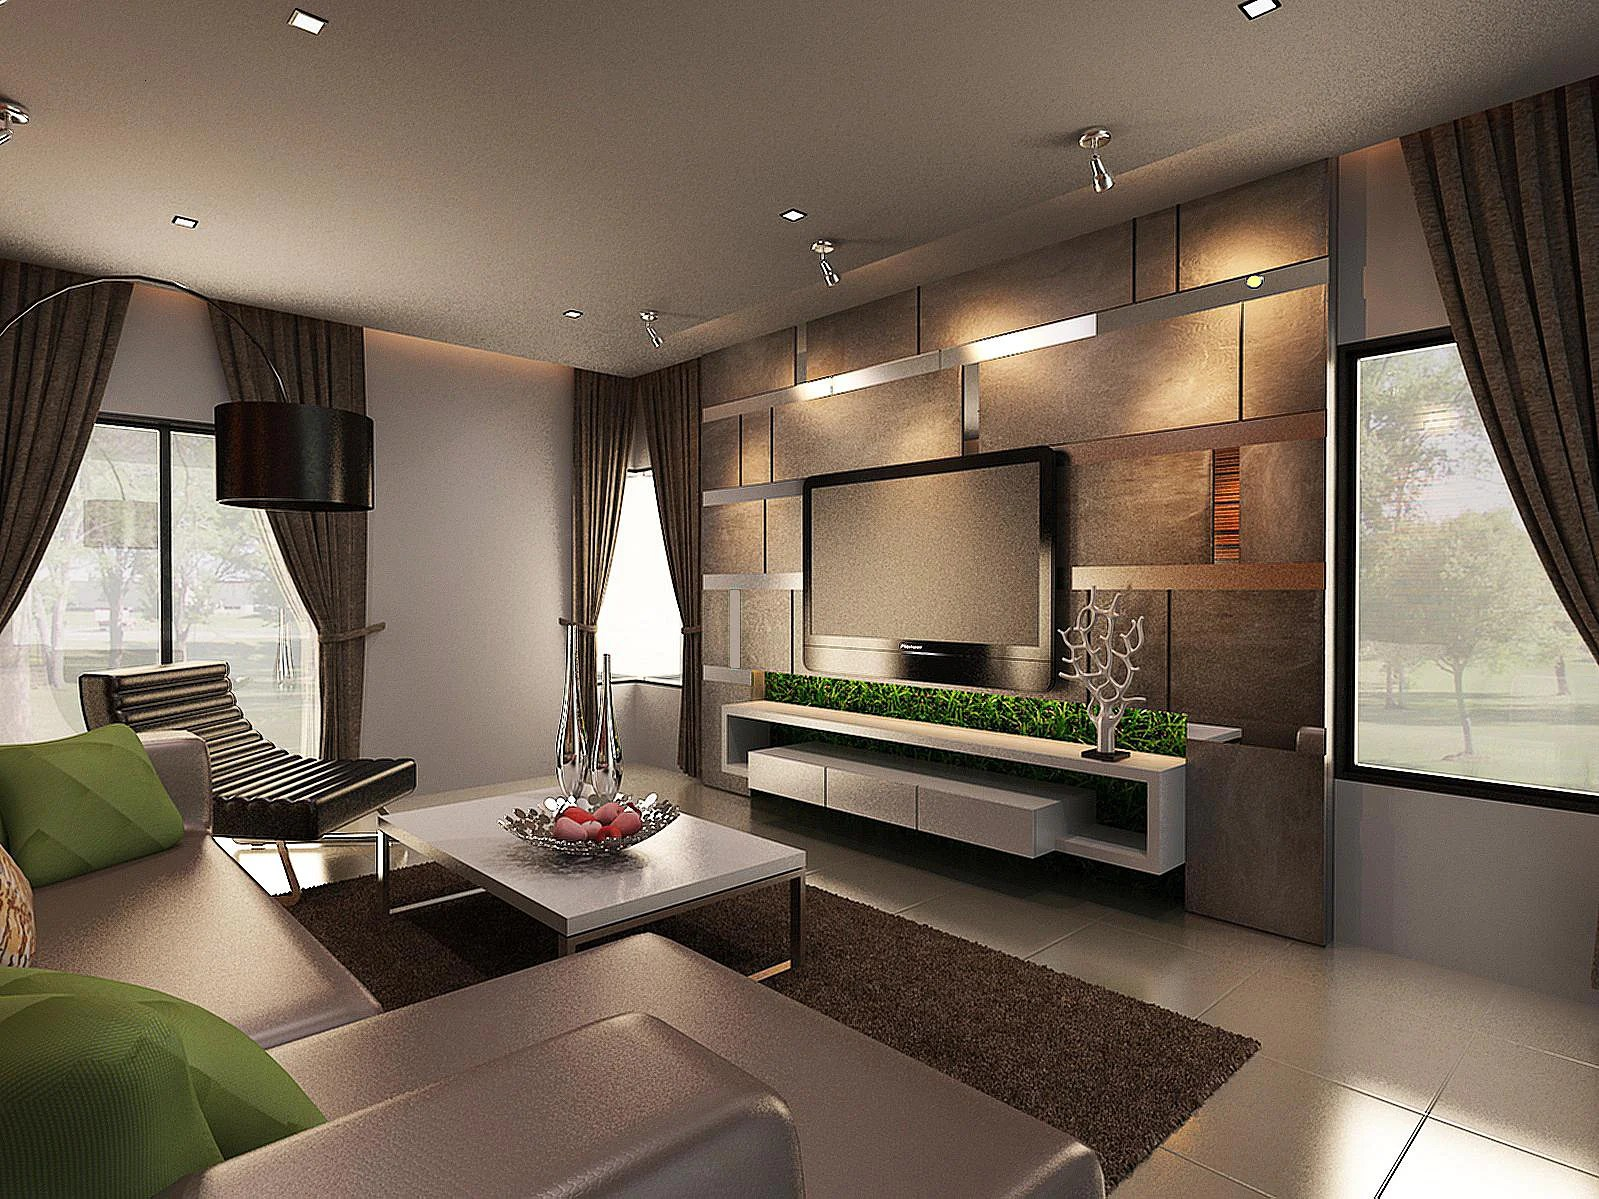 Lavish Interior Design - Hdb Bto Dbss